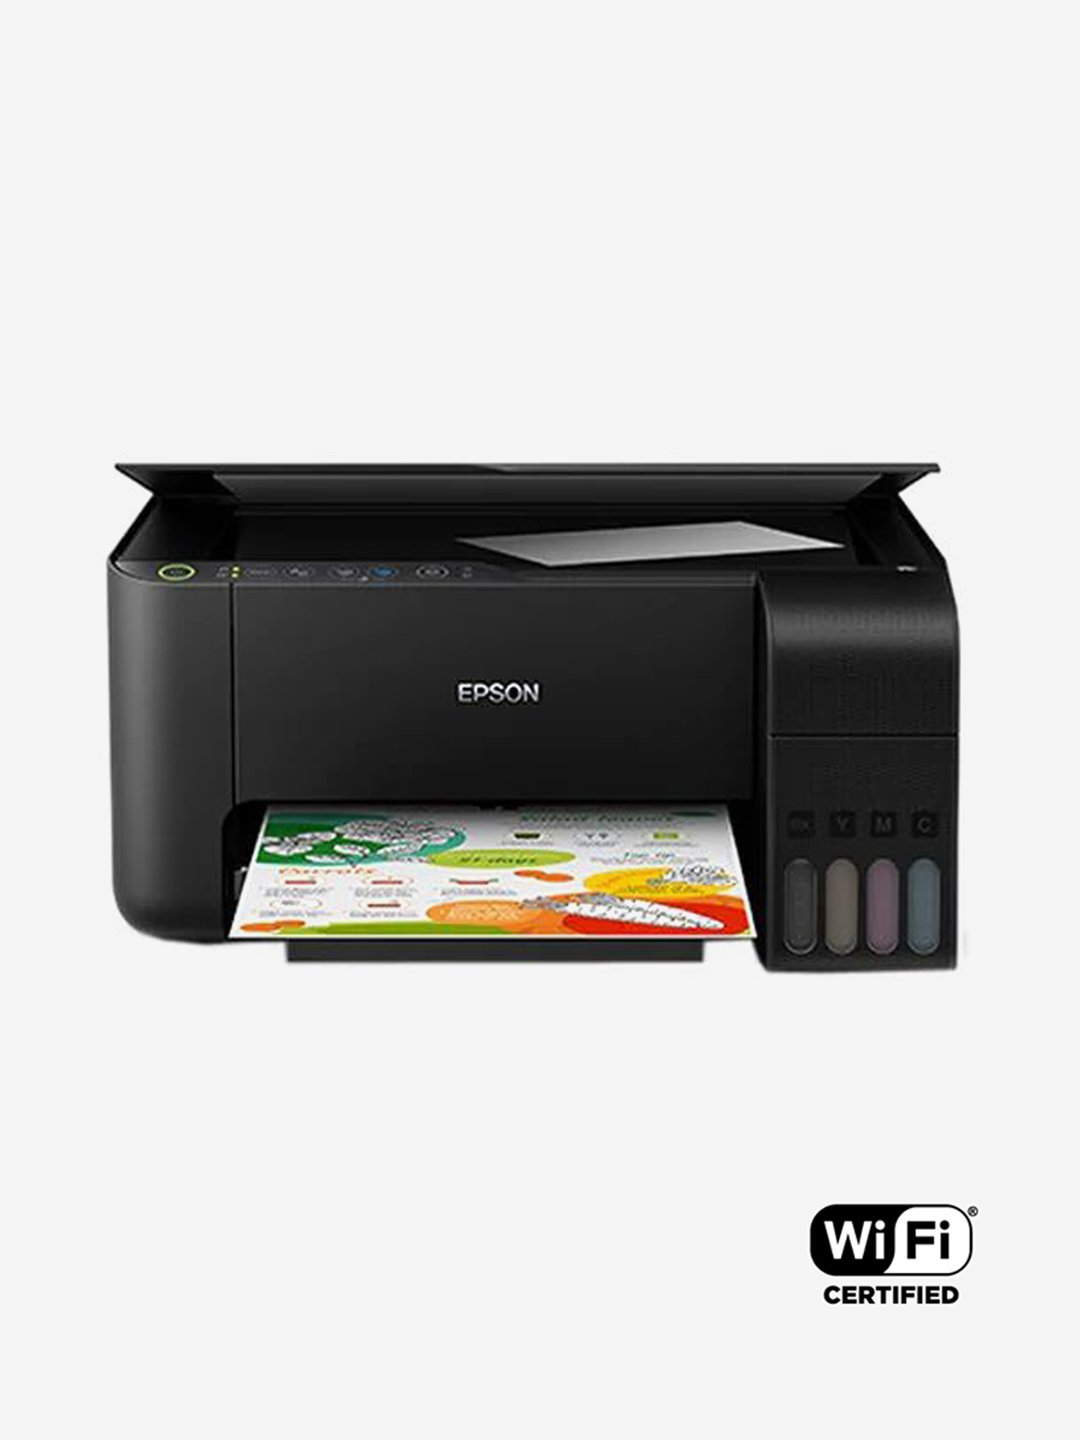 Epson EcoTank L3150 Multi-Function Wi-Fi AIO Ink Tank Printer (Black)